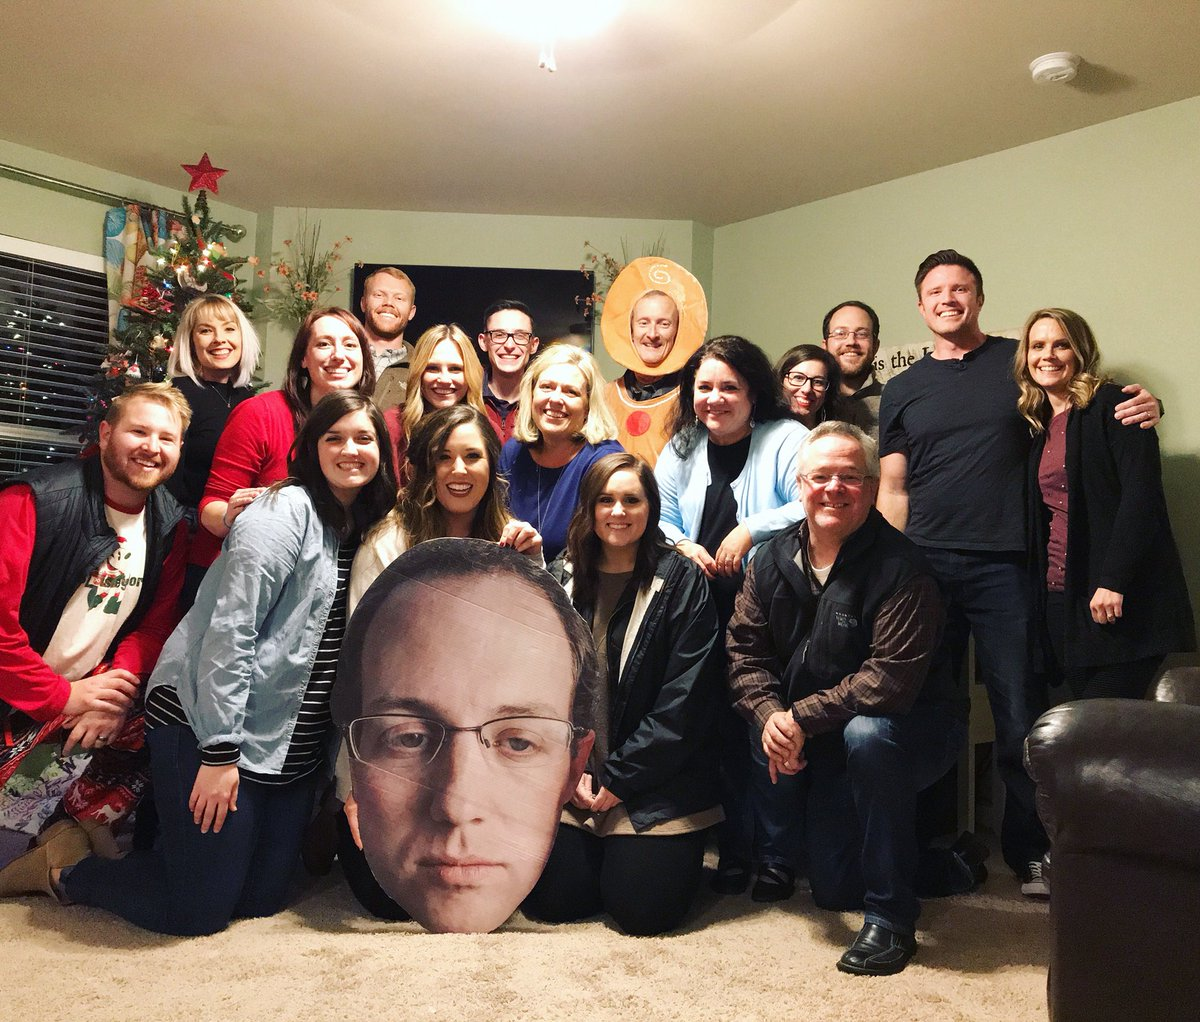 test Twitter Media - FUGE Team Family Christmas Party!! We ate, we laughed, we opened random presents that we found around our homes. It is always a great time with this crew! Huge thank you to our fearless leader for having us all over @bentrueblood! https://t.co/xfrtjgQMIG